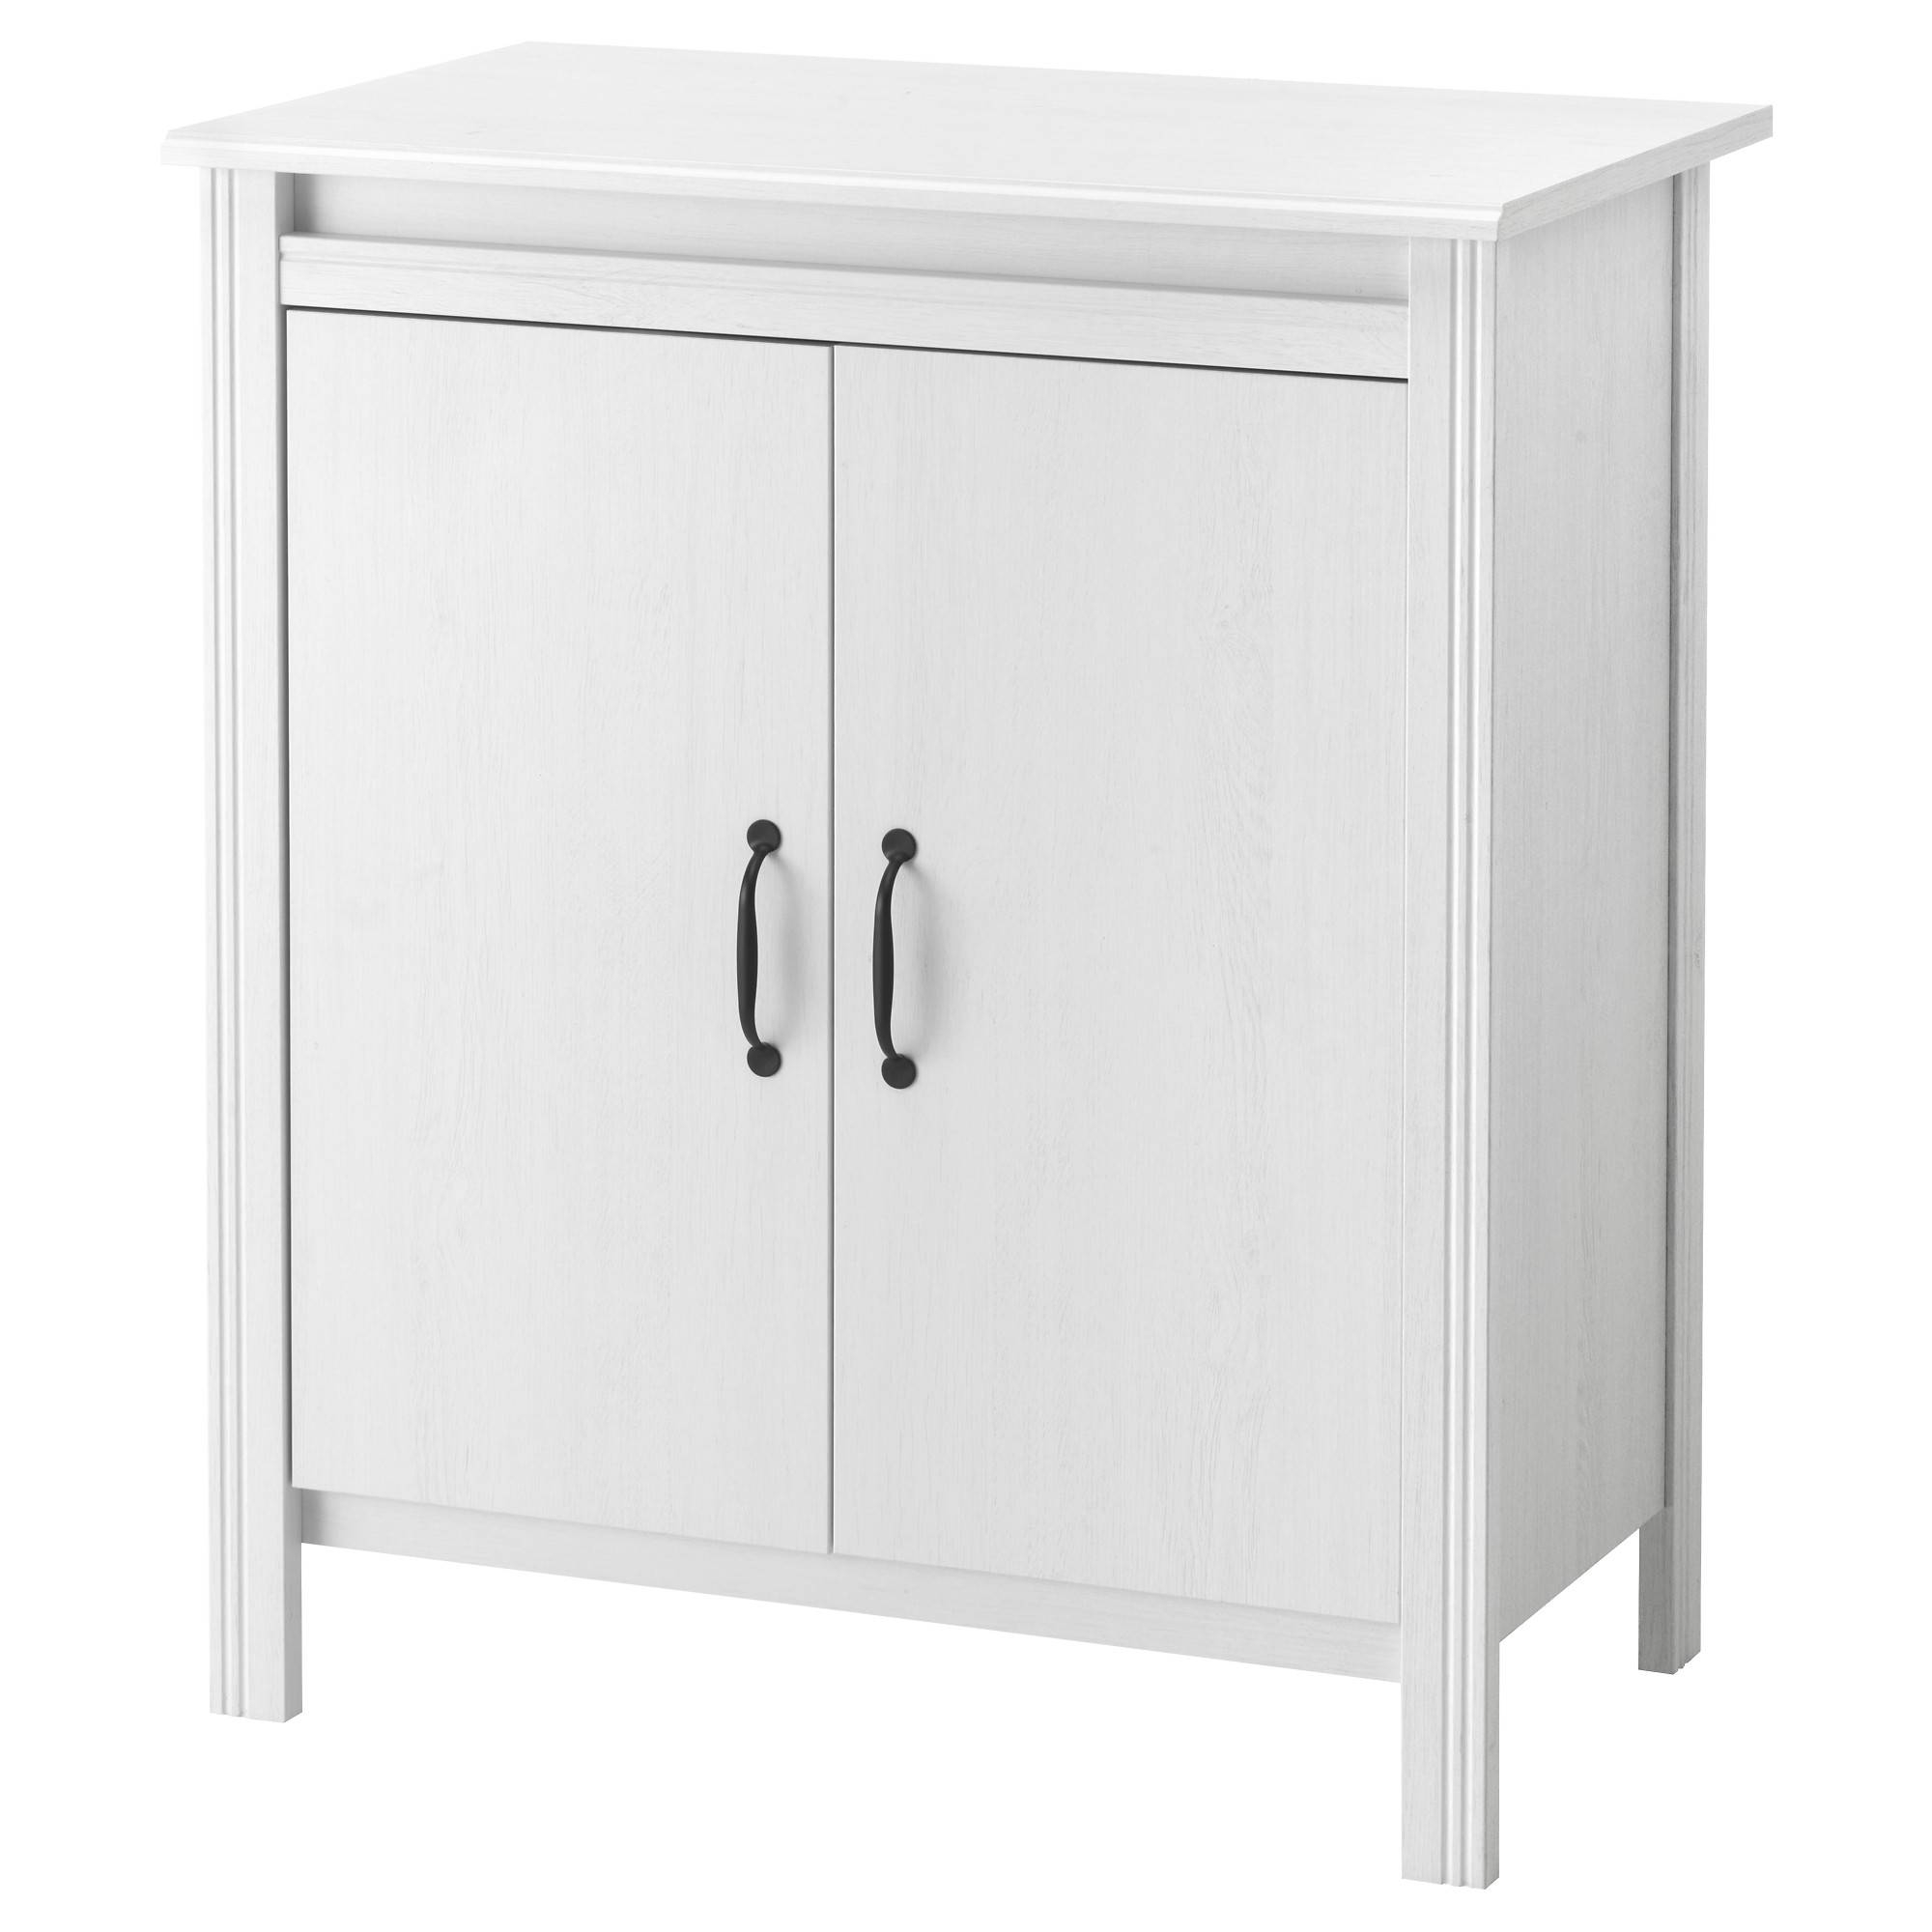 Cabinets & Sideboards - Ikea regarding Shallow Sideboard Cabinets (Image 11 of 30)